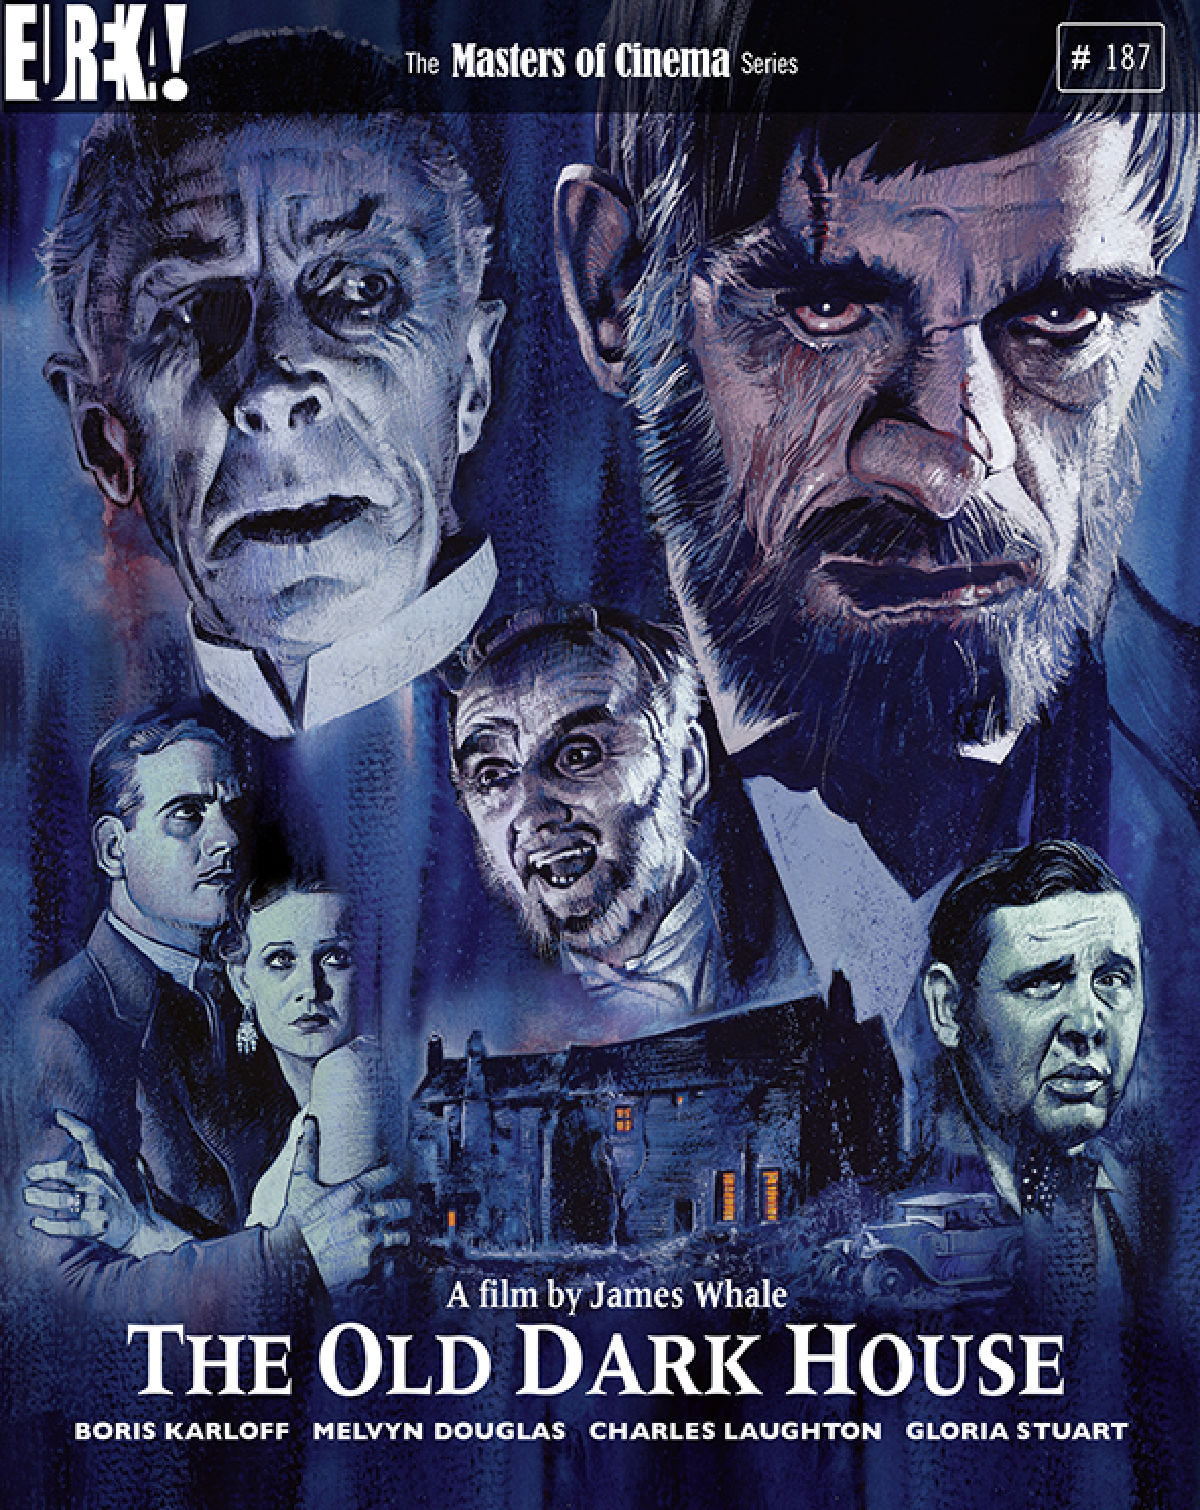 'The Old Dark House' movie poster